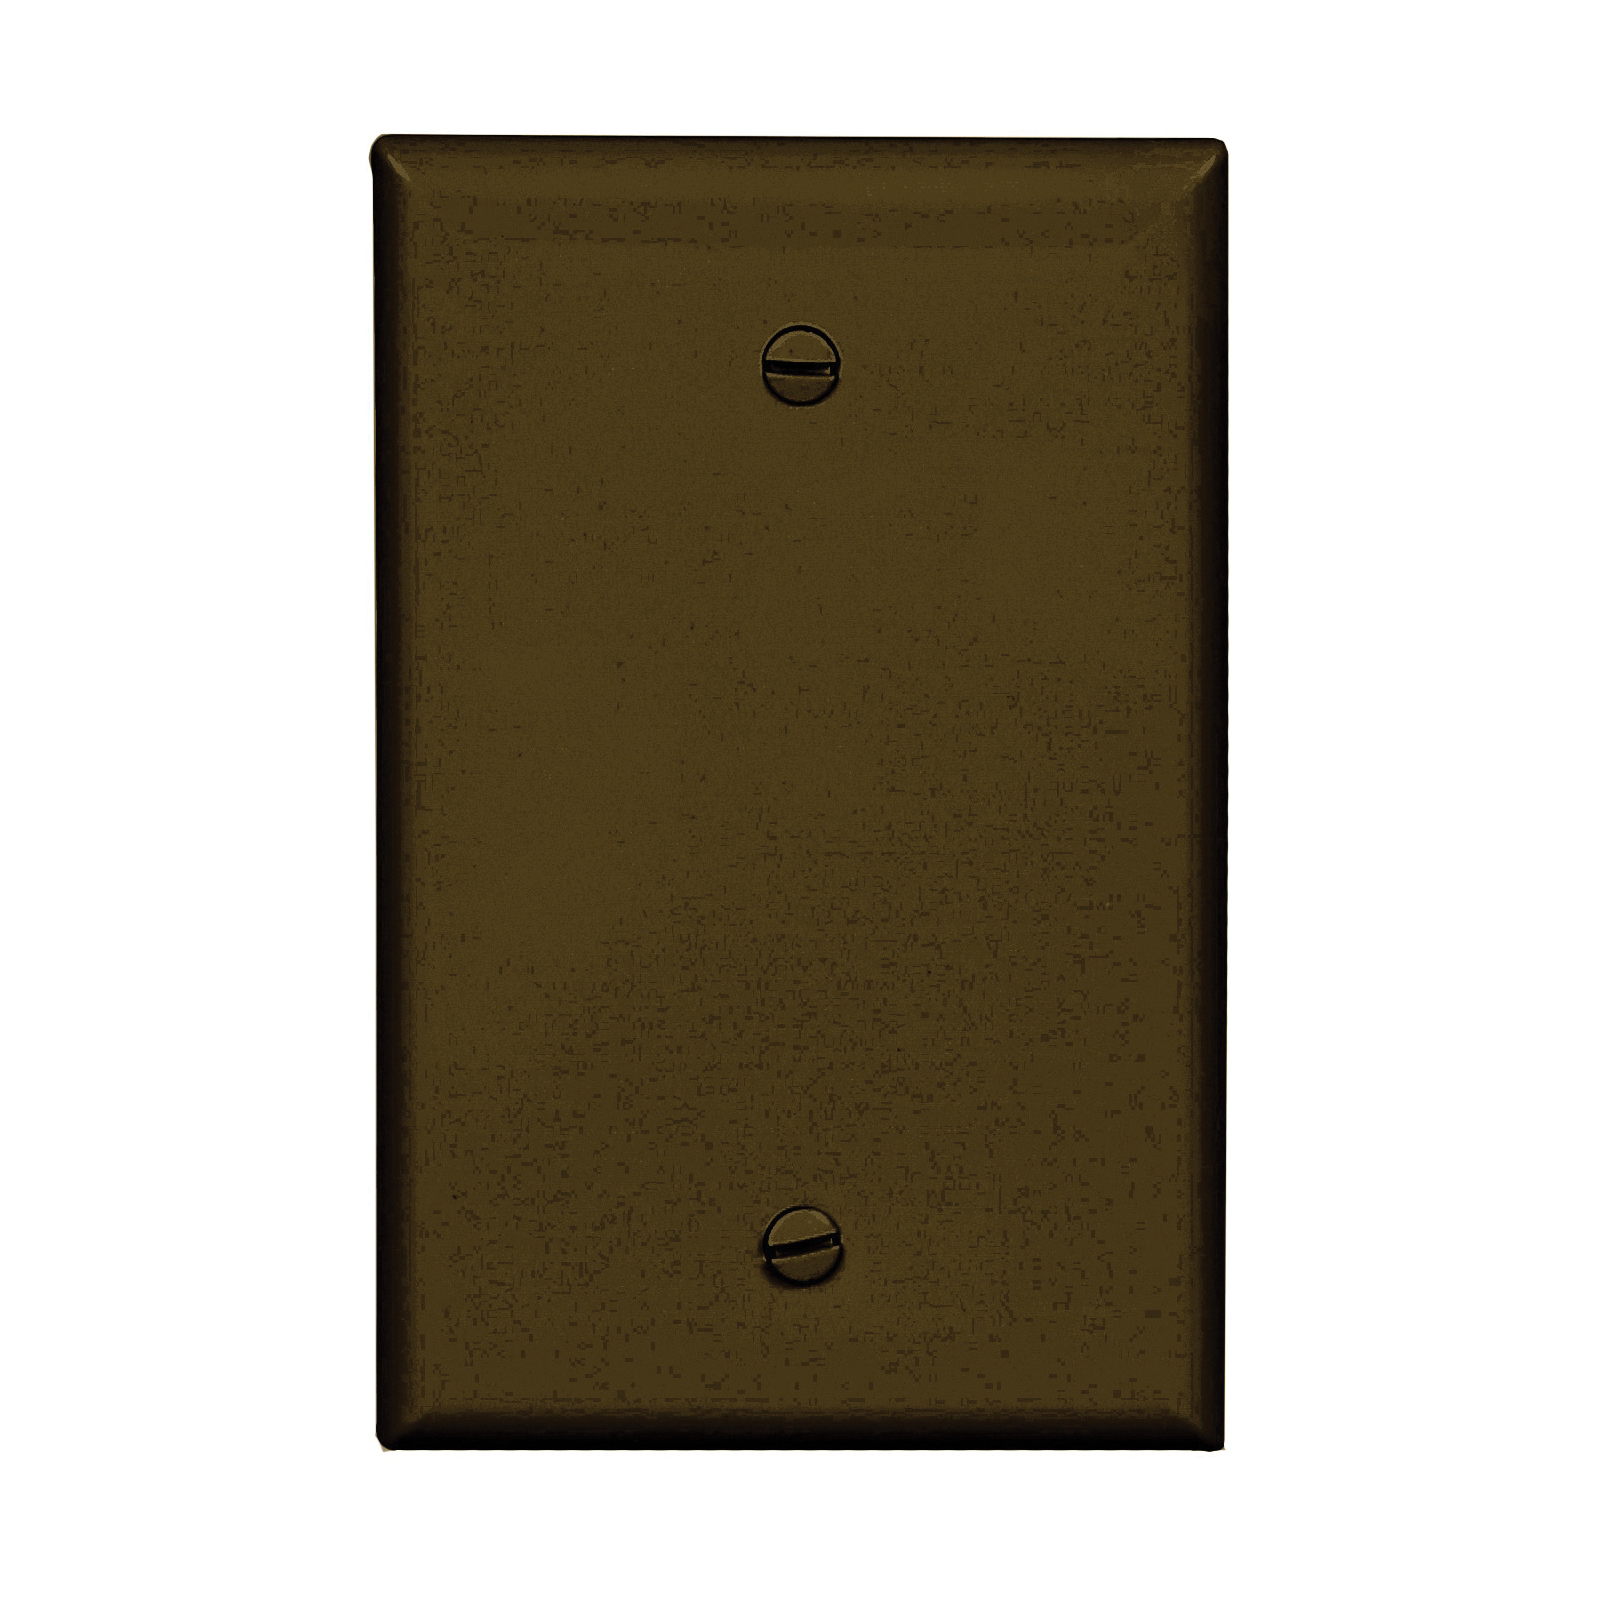 Picture of Arrow Hart PJ13B Wallplate, 3-1/2 in L, 1/4 in W, 1-Gang, Polycarbonate, Brown, High-Gloss, Screw Mounting